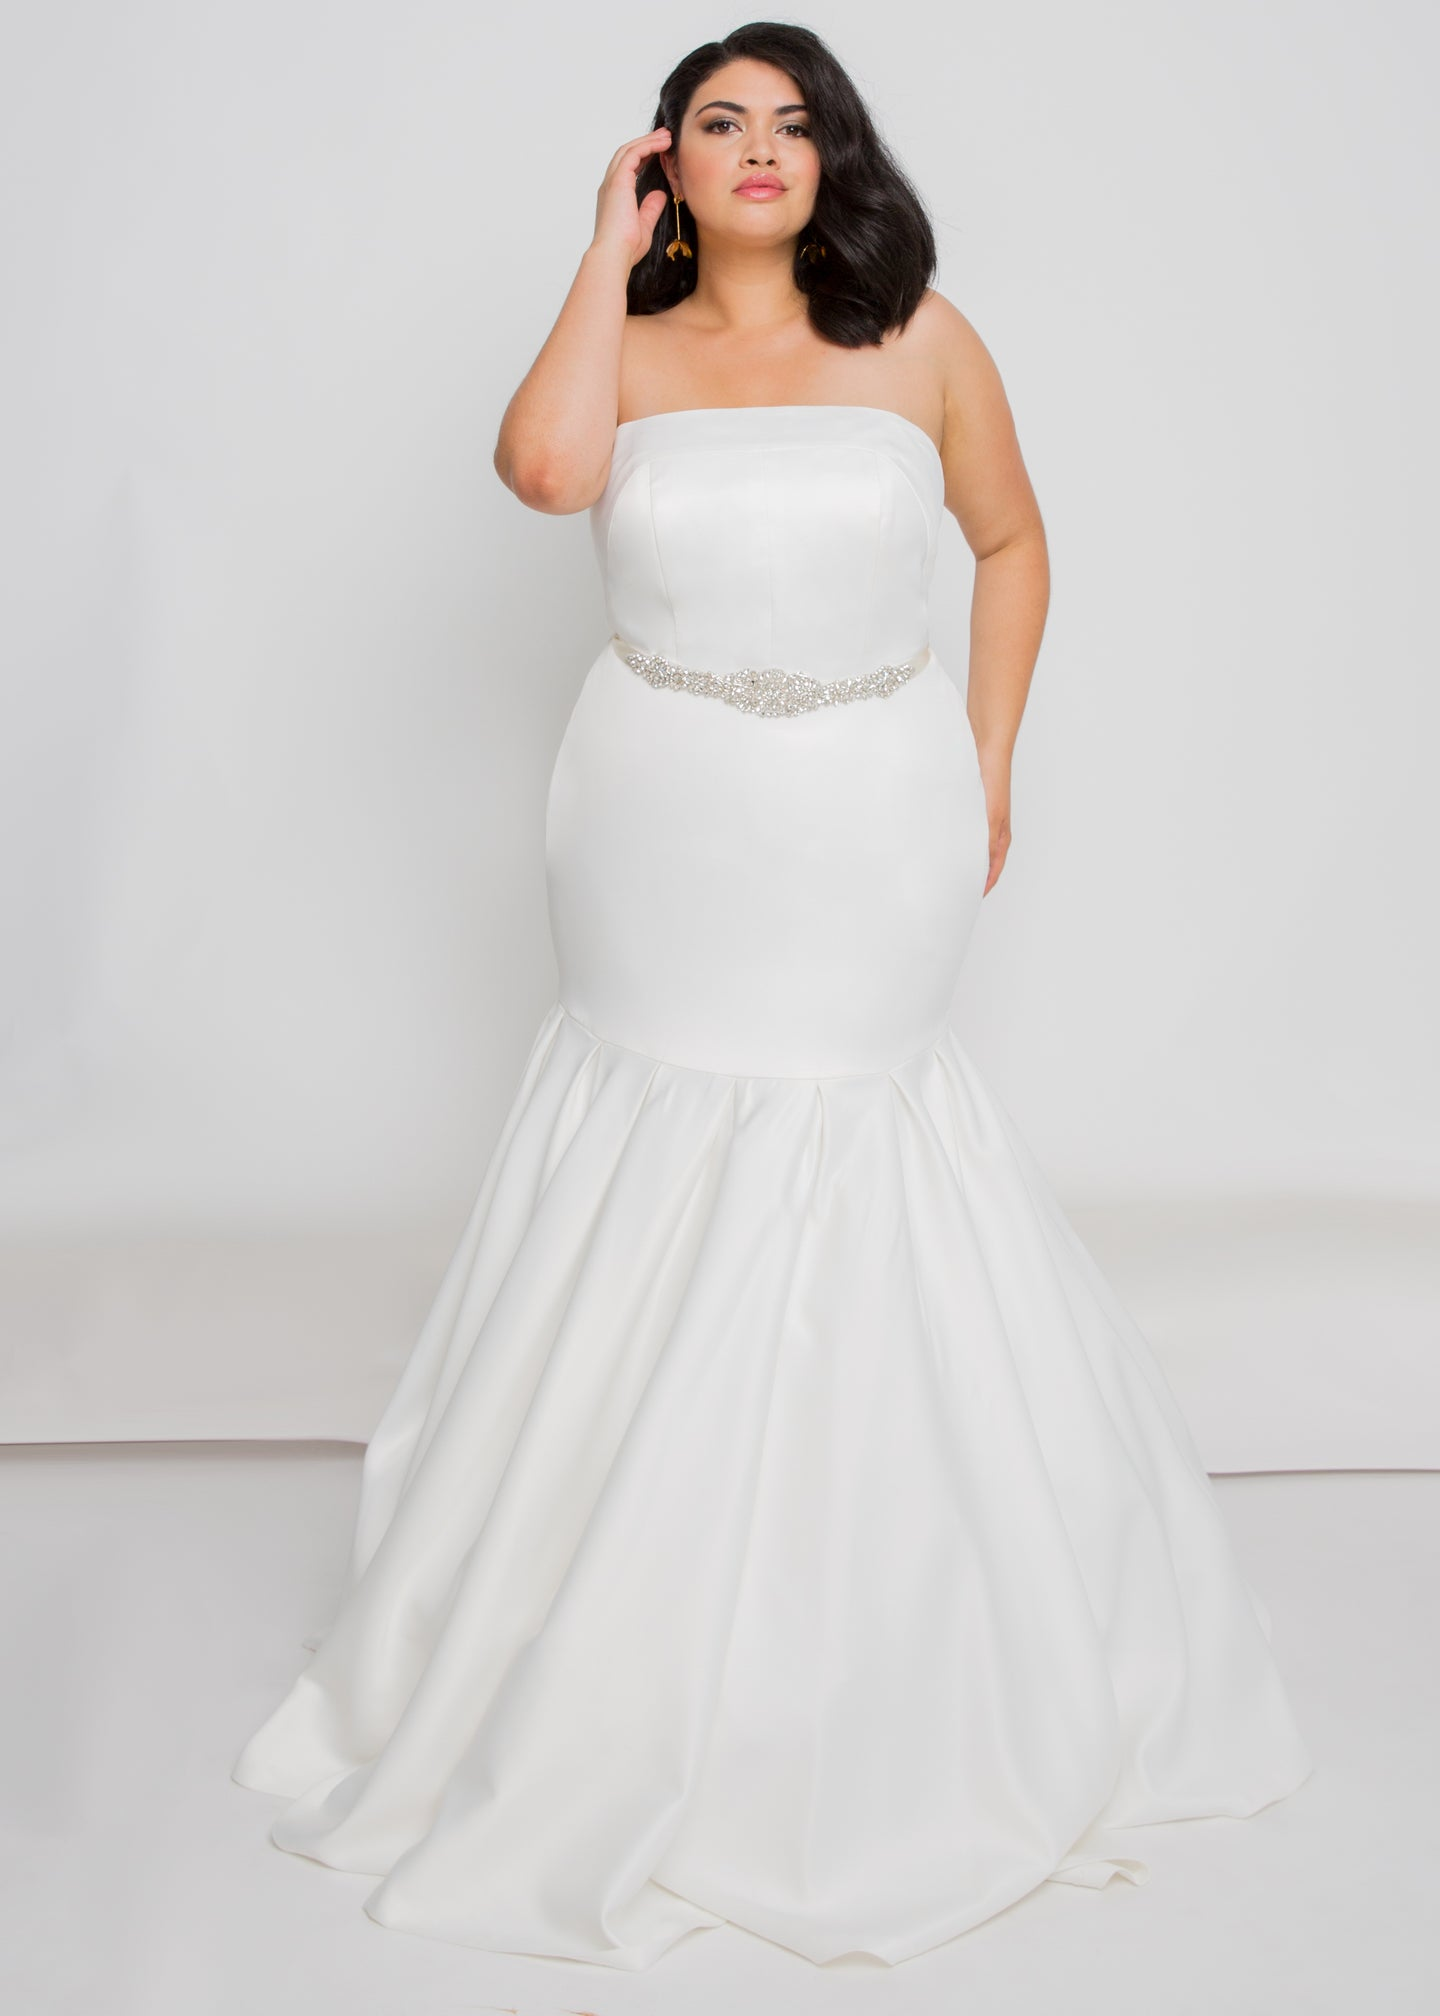 Gorgeous bridal gowns for all body shapes: plus size, curvy, or petite brides. Try on our wedding dresses at home. Size 0-30. Comfortable. Convenient. Fun. Lace or satin. Mermaid or A-line. We love this top for its straight neckline that gives us such cool and modern vibes. This sleek skirt is the perfect balance between elegant satin and figure-flattering crepe that you have been looking for.